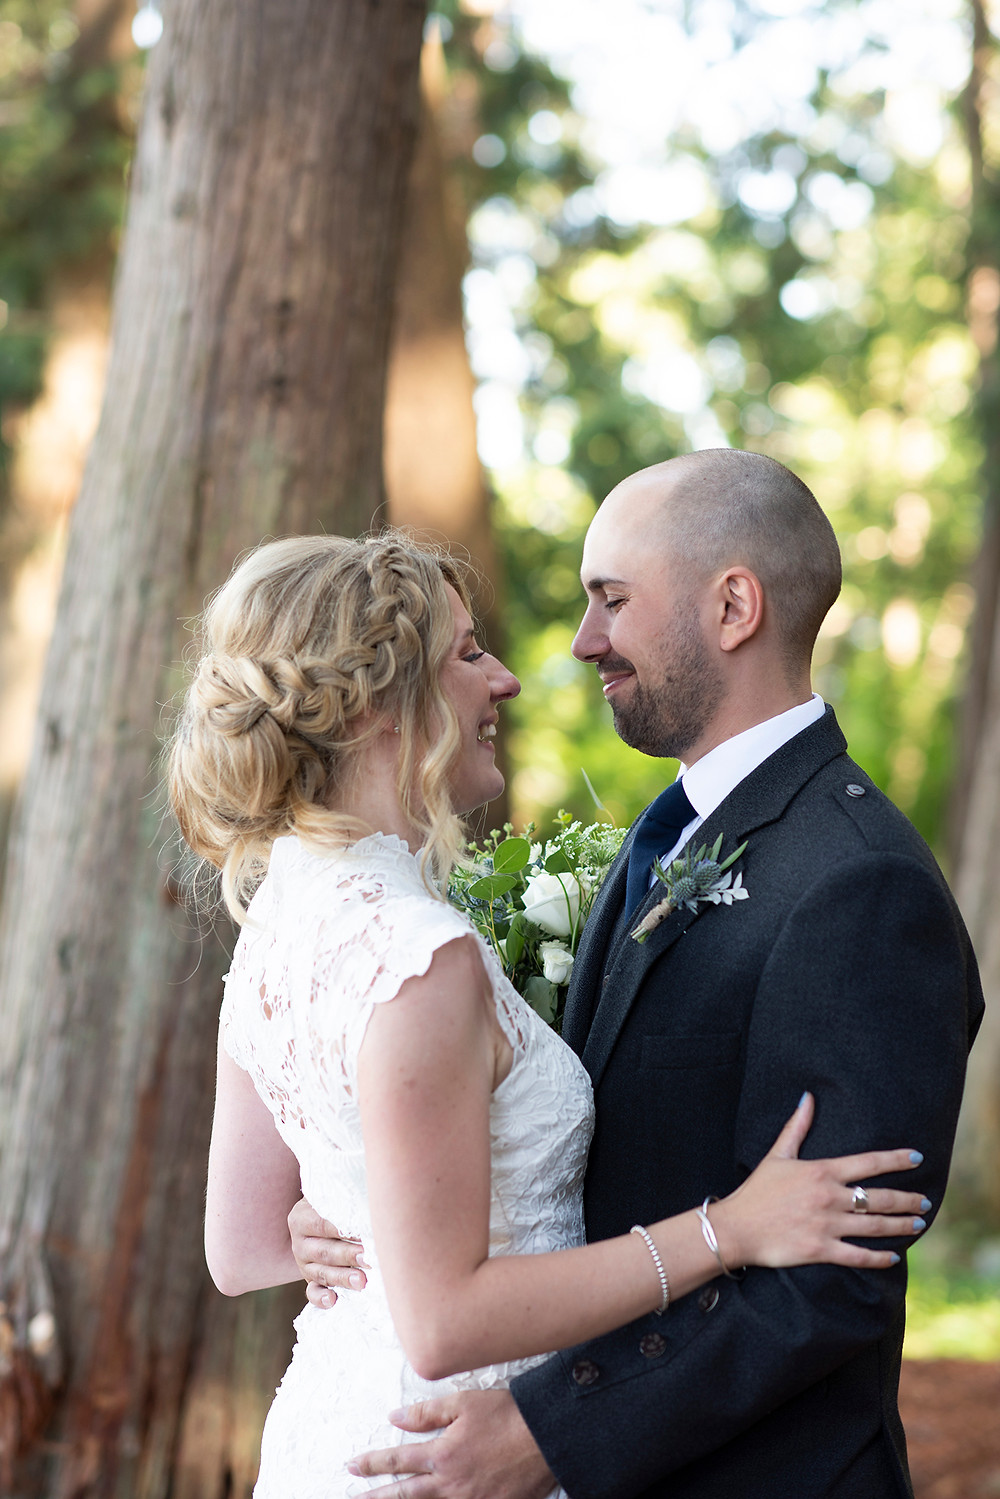 bride and groom embrace at their Sea Cider wedding in Victoria. Photographed by Kaitlyn Shea.